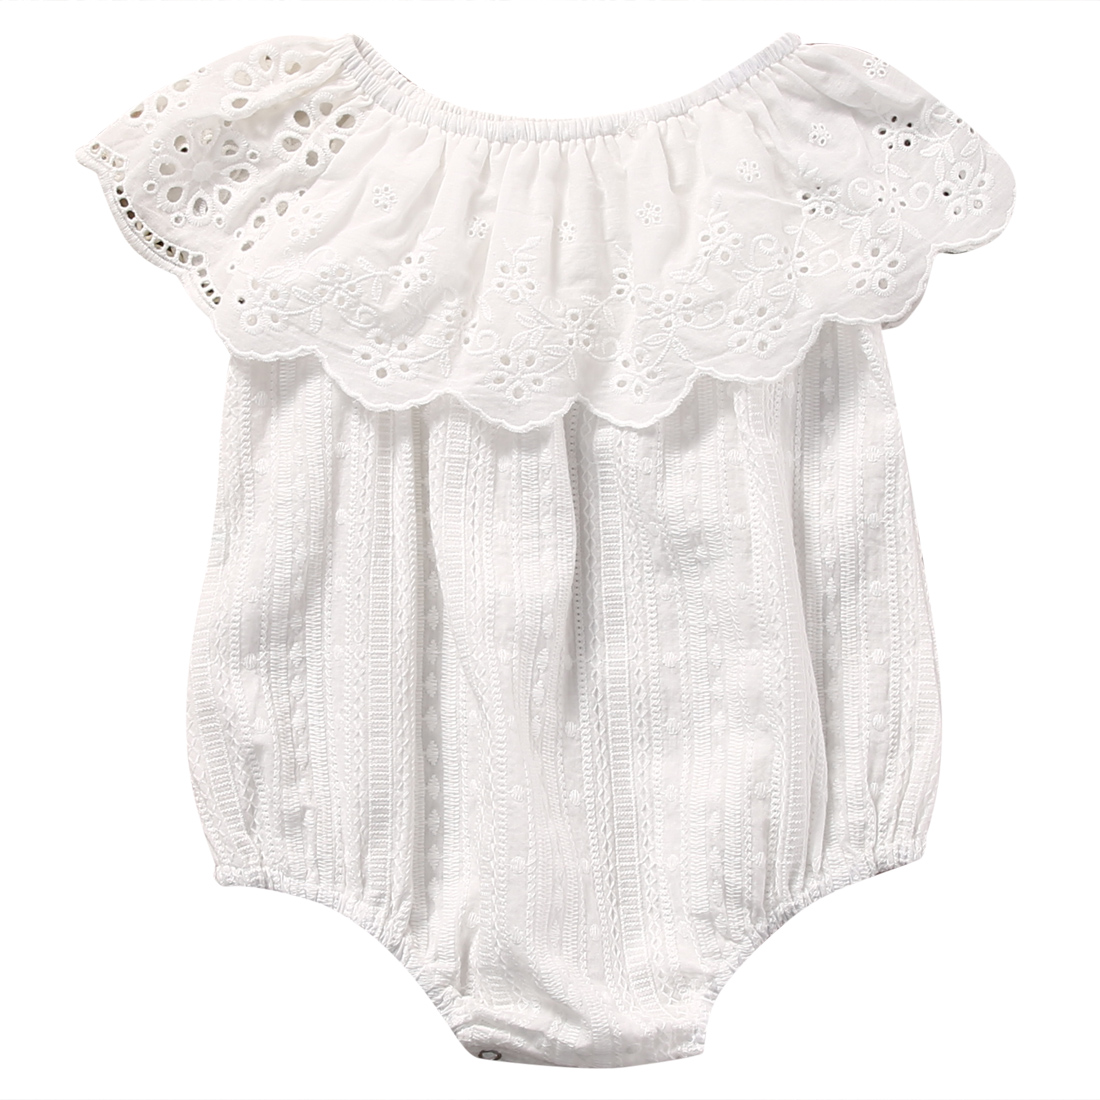 2017 New Cute Newborn Baby Girl Romper Clothes White Lace Playsuit Jumpsuit Outfit Summer Bebes Sunsuit 0-24M summer newborn infant baby girl romper sleeveles cotton floral romper jumpsuit outfit playsuit clothes